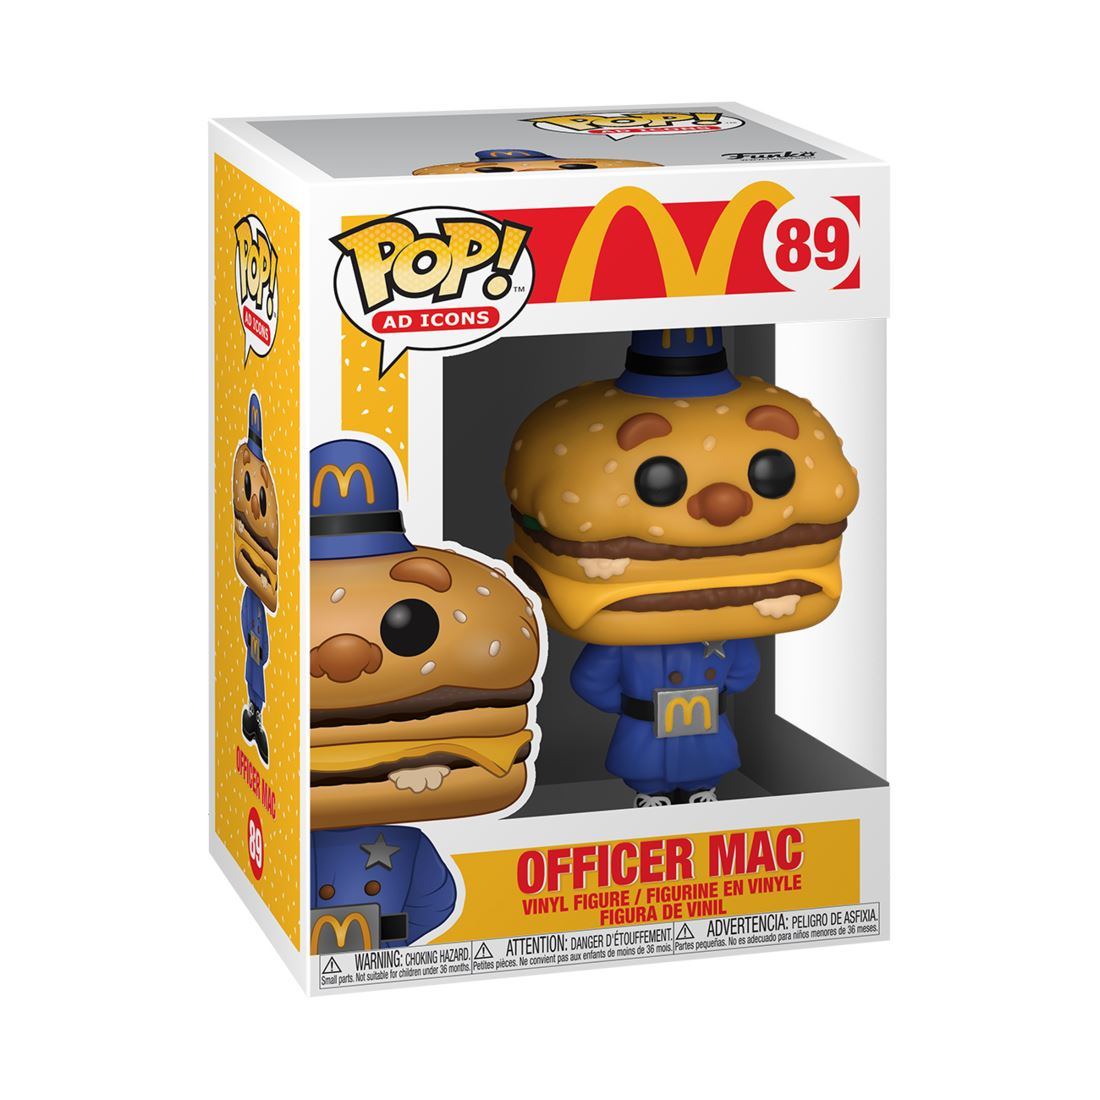 Officer Big Mac #89 McDonalds Funko POP! Ad Icons [PRE-ORDER] Pop! Funko